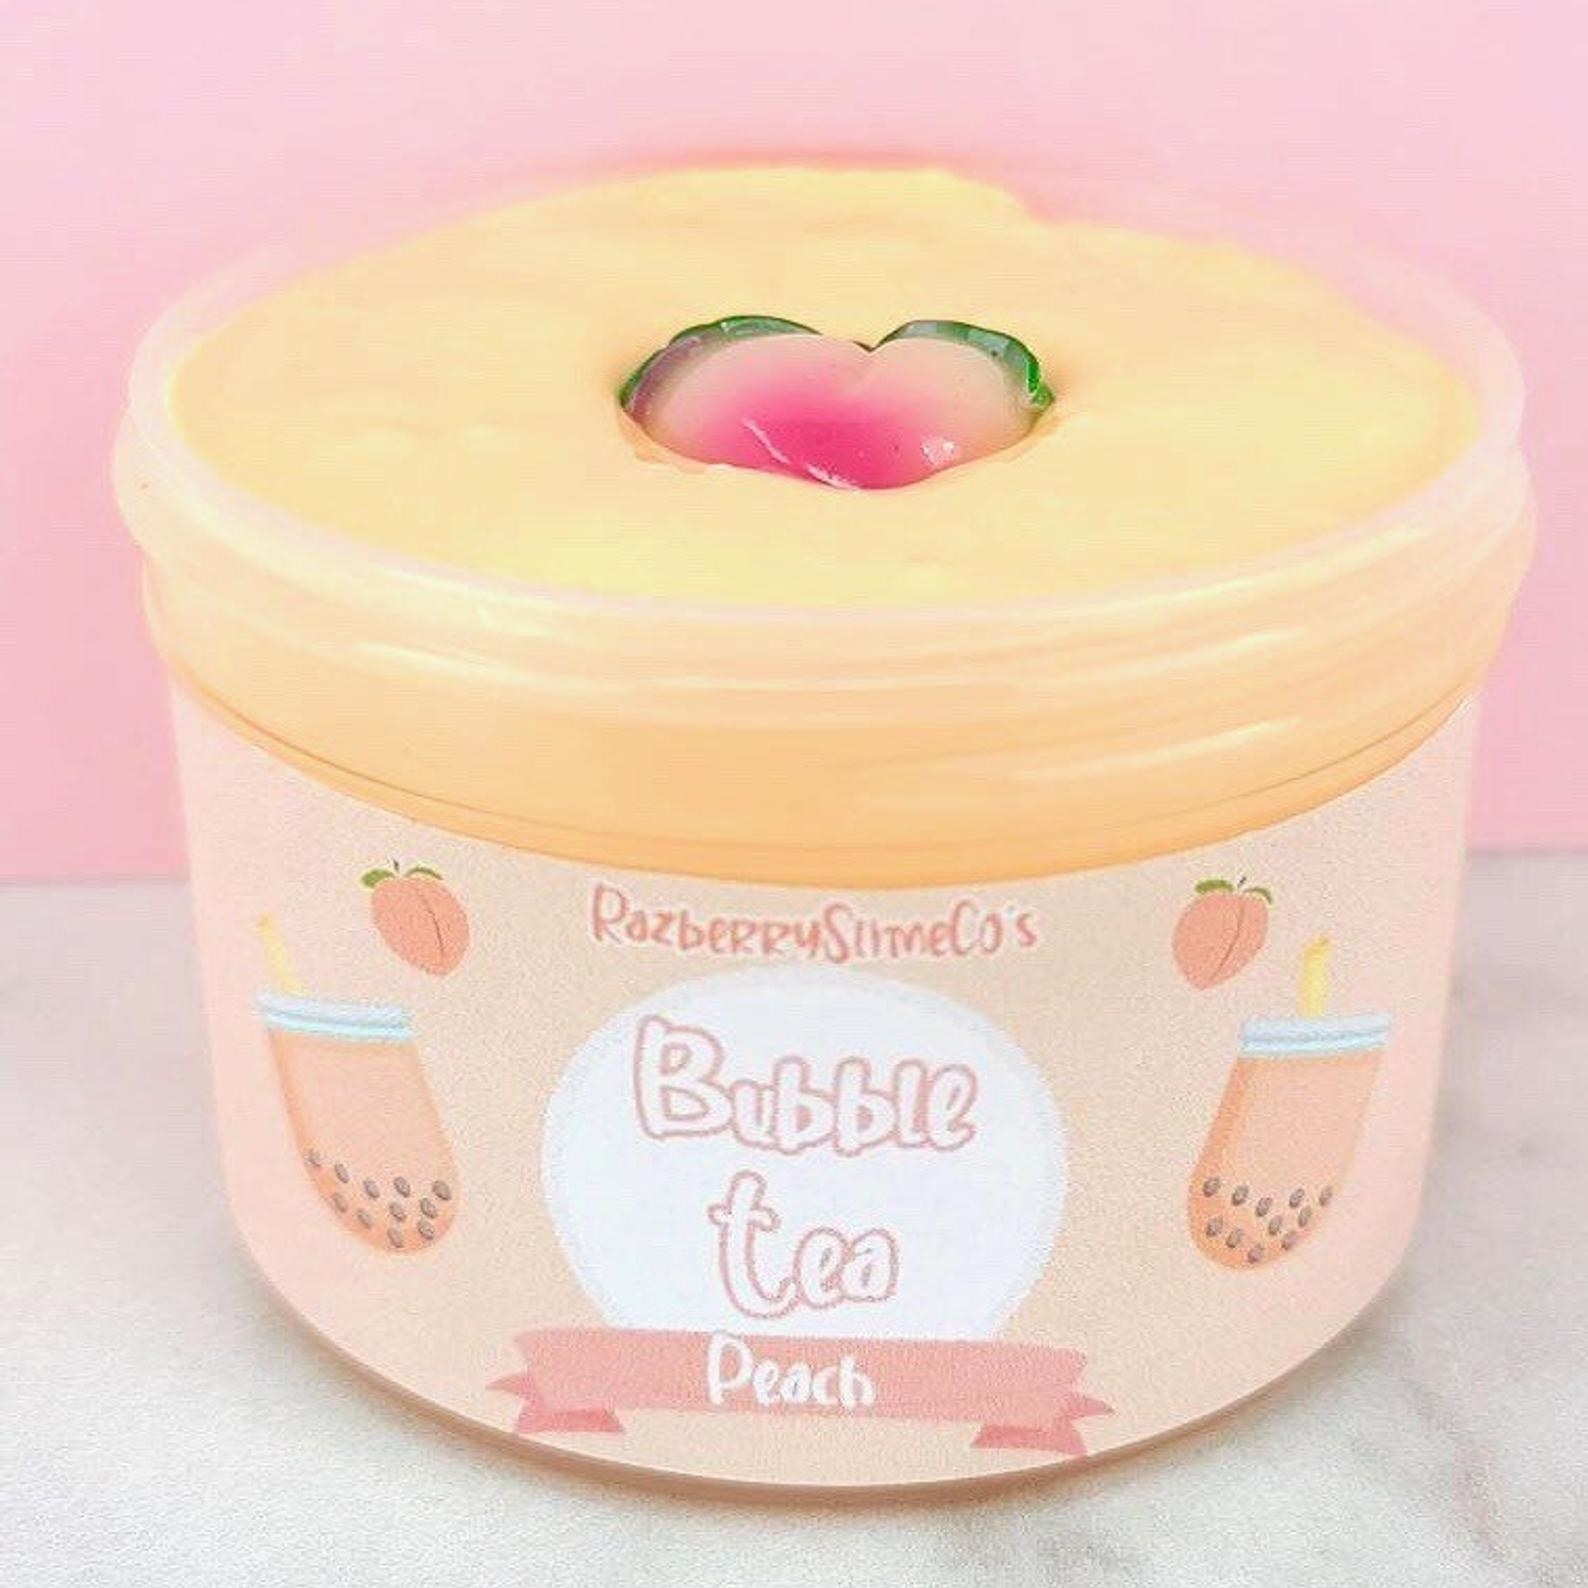 A peach colored jar of bubble tea slime with a peach charm on top